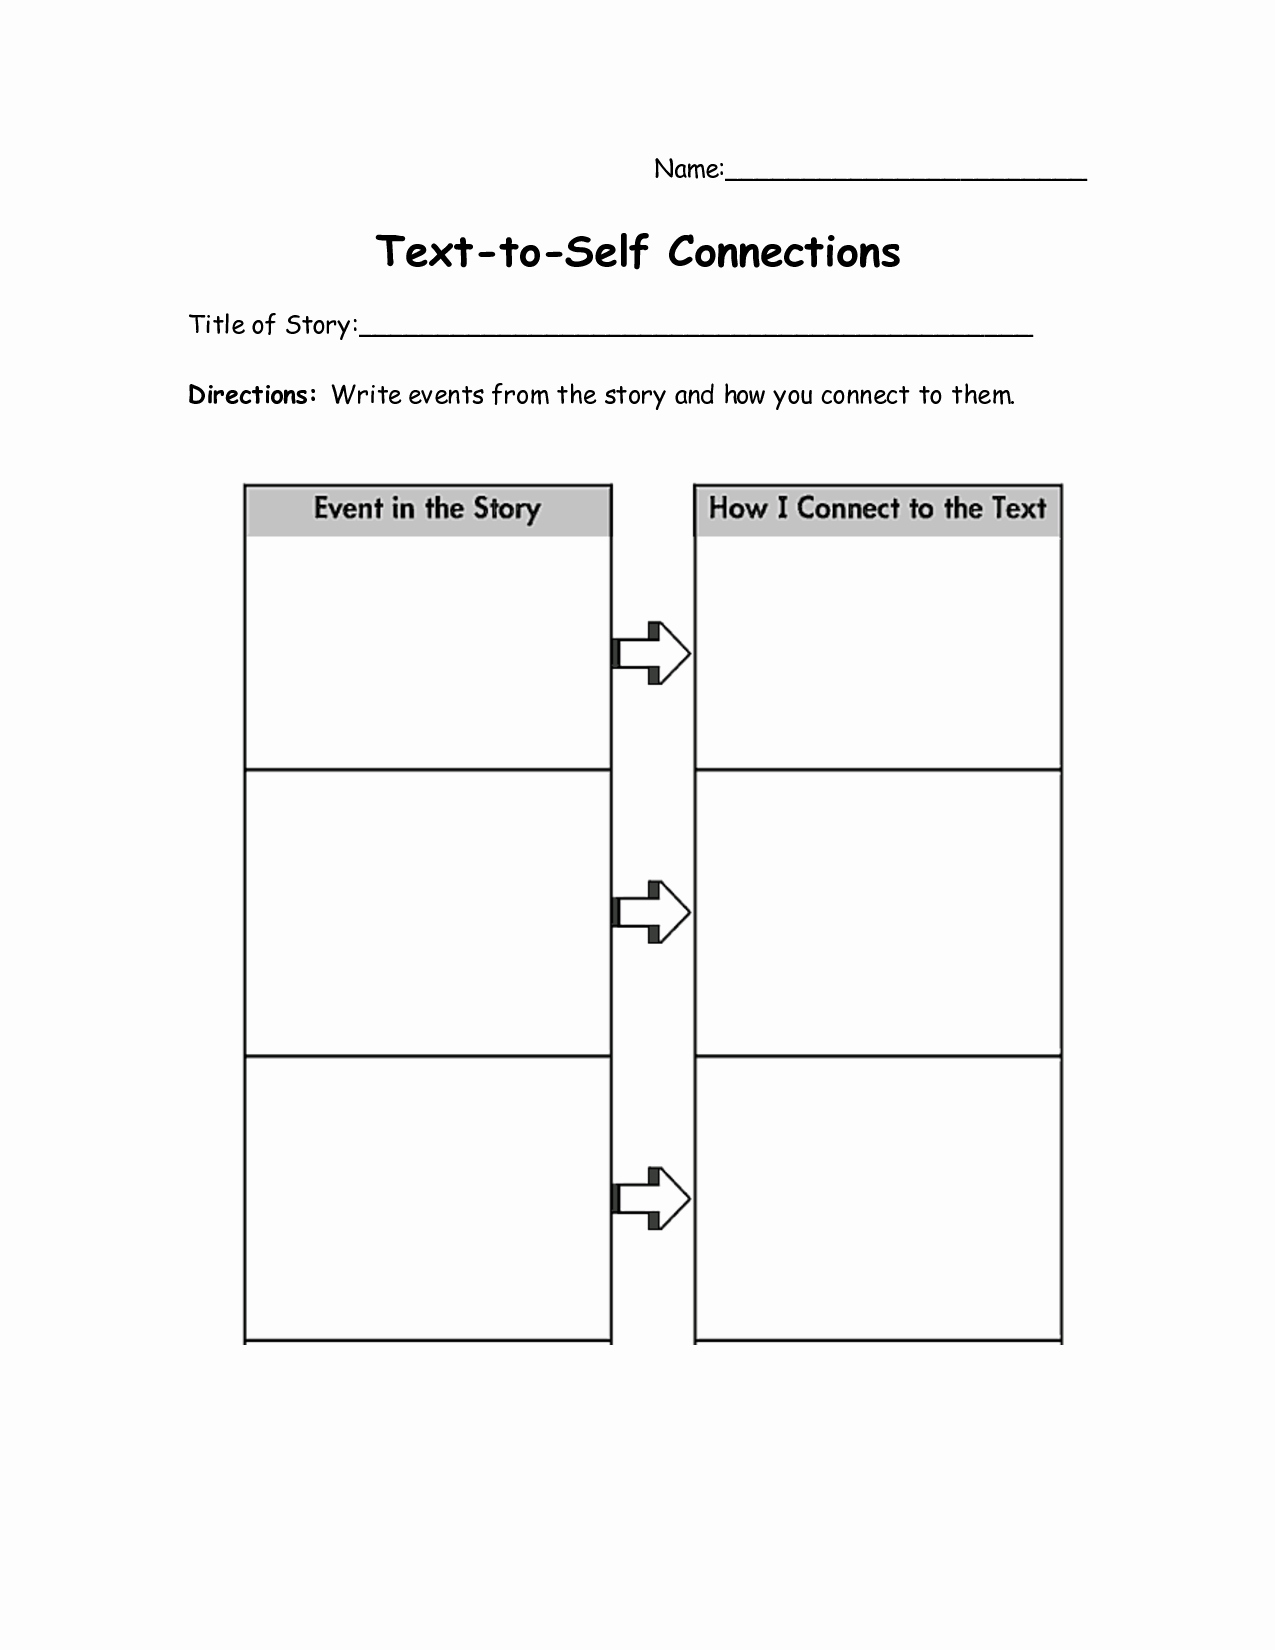 Text to Text Connections Worksheet Awesome Connect the Text Worksheets Education